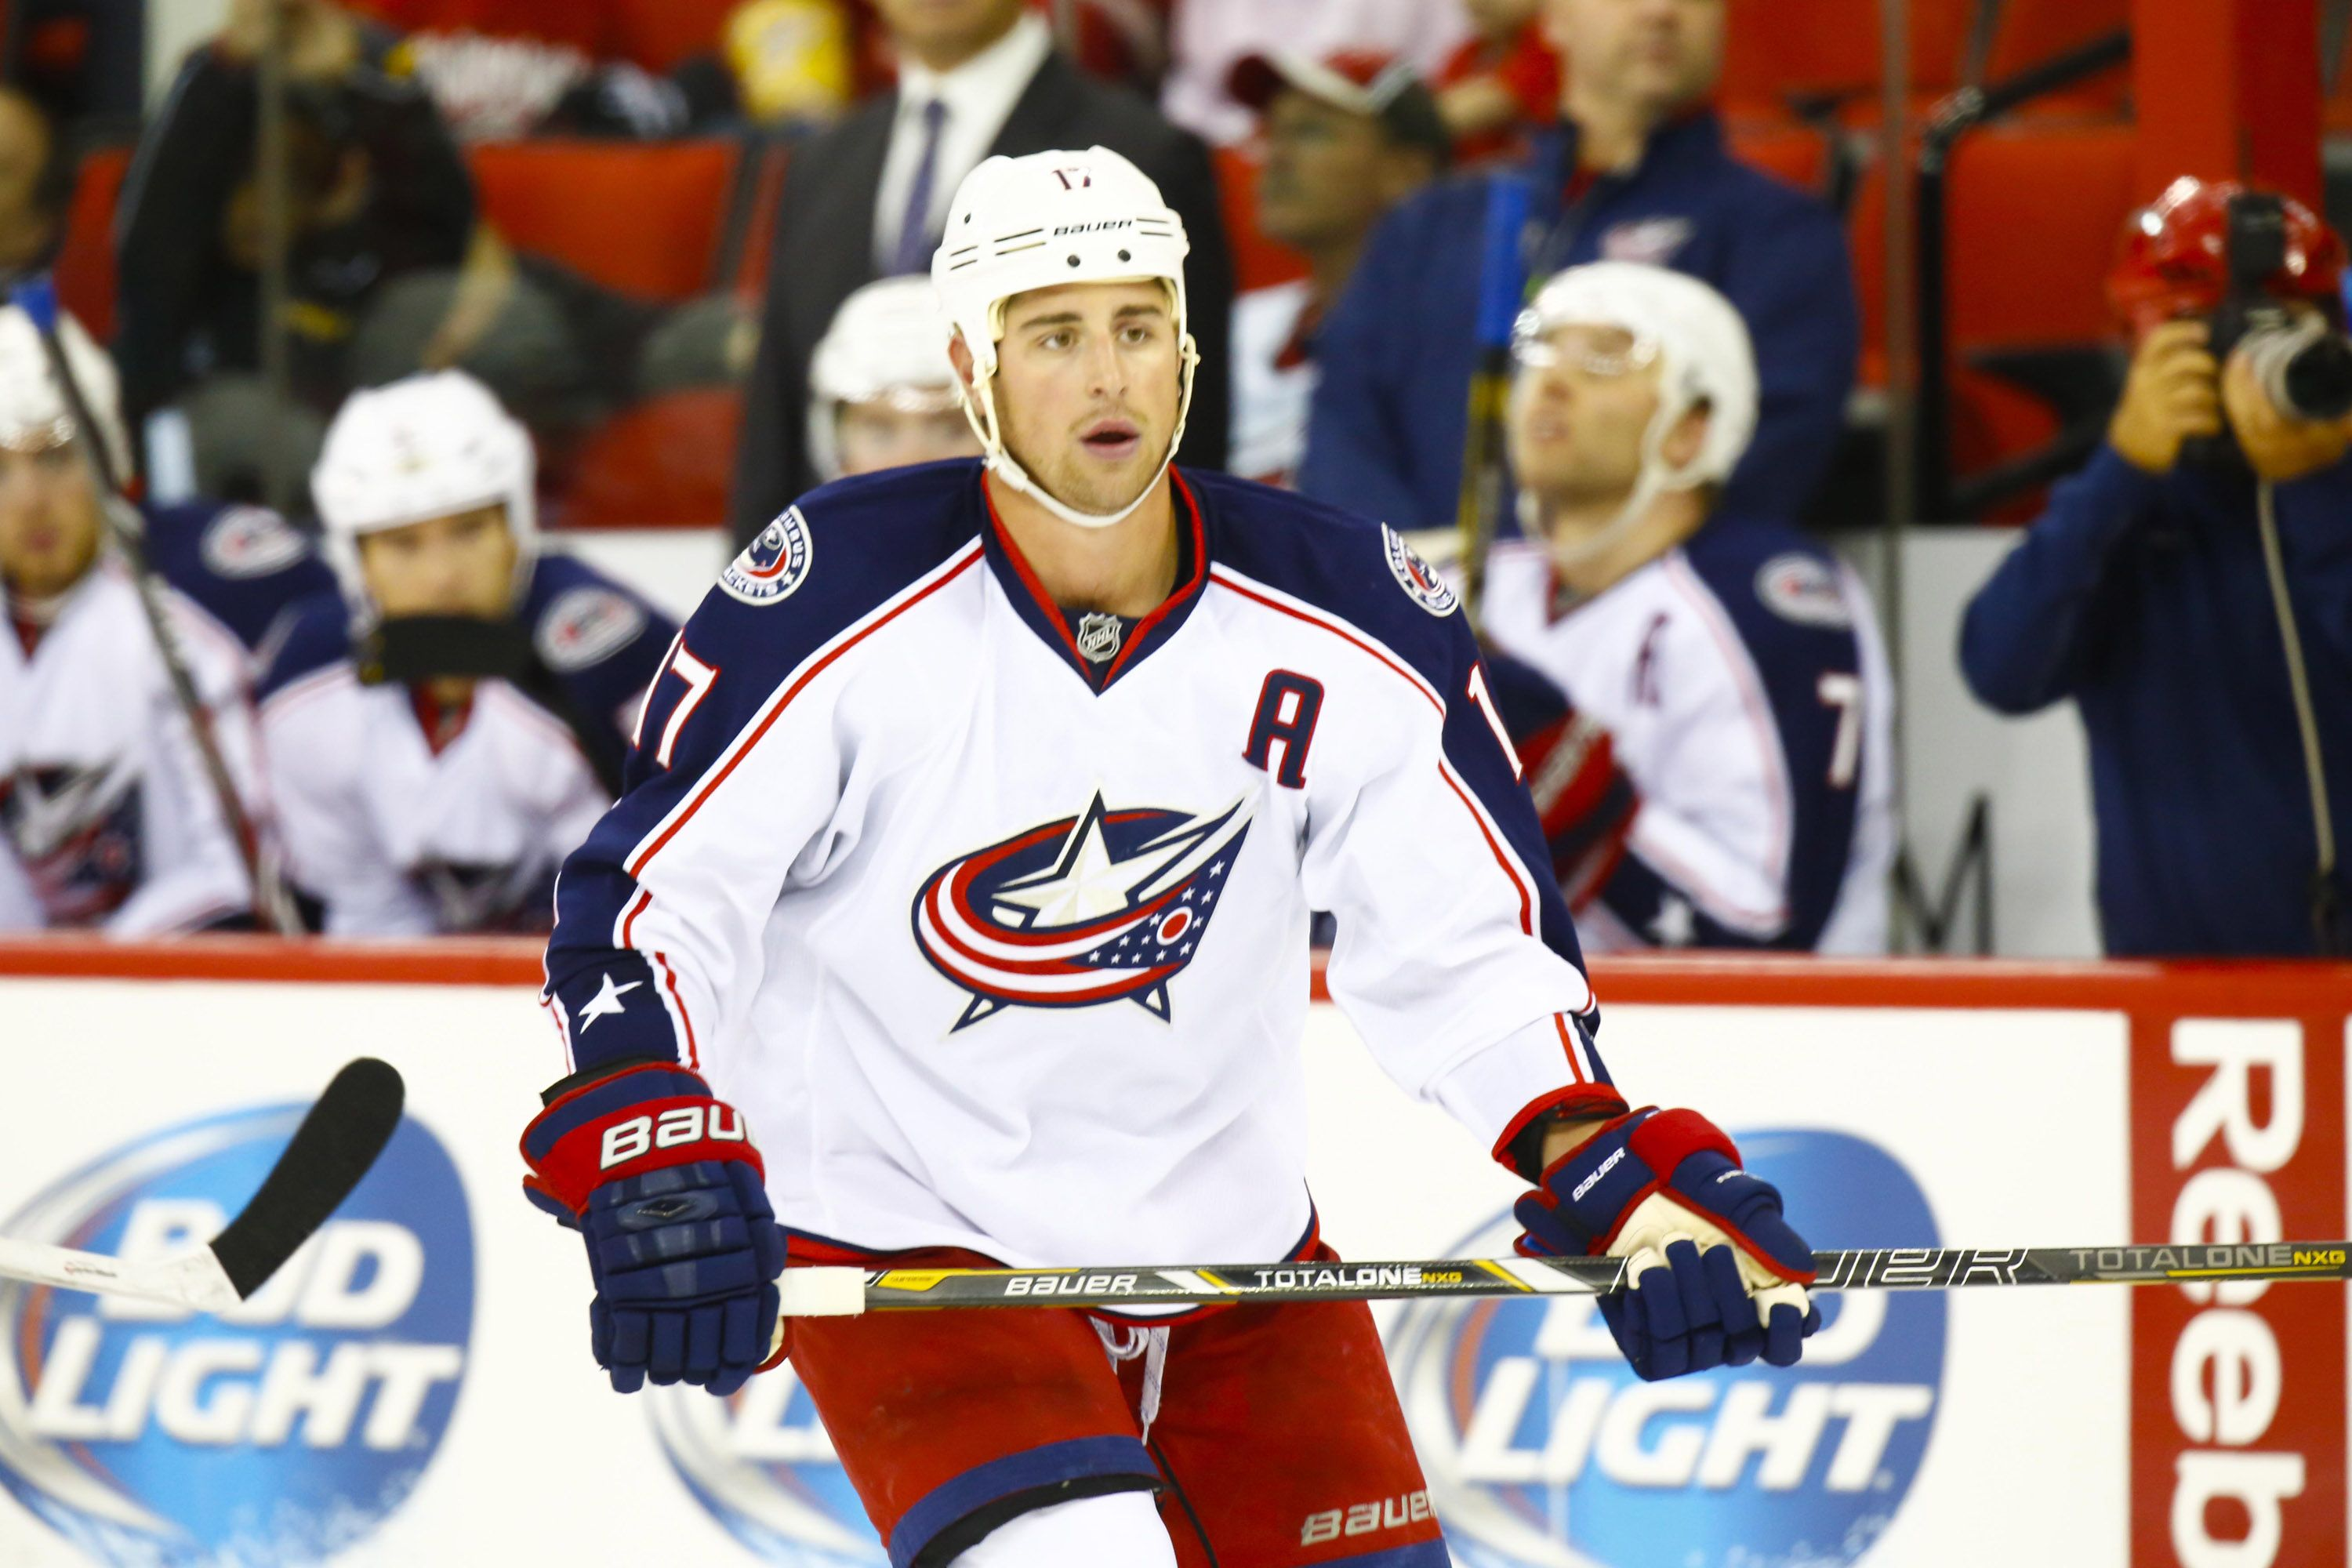 CrowdCam Hot Shot: Columbus Blue Jackets center Brandon Dubinsky looks on during the game against the Carolina Hurricanes at PNC Center. The Blue Jackets defeated the Hurricanes 5-4. Photo by James Guillory